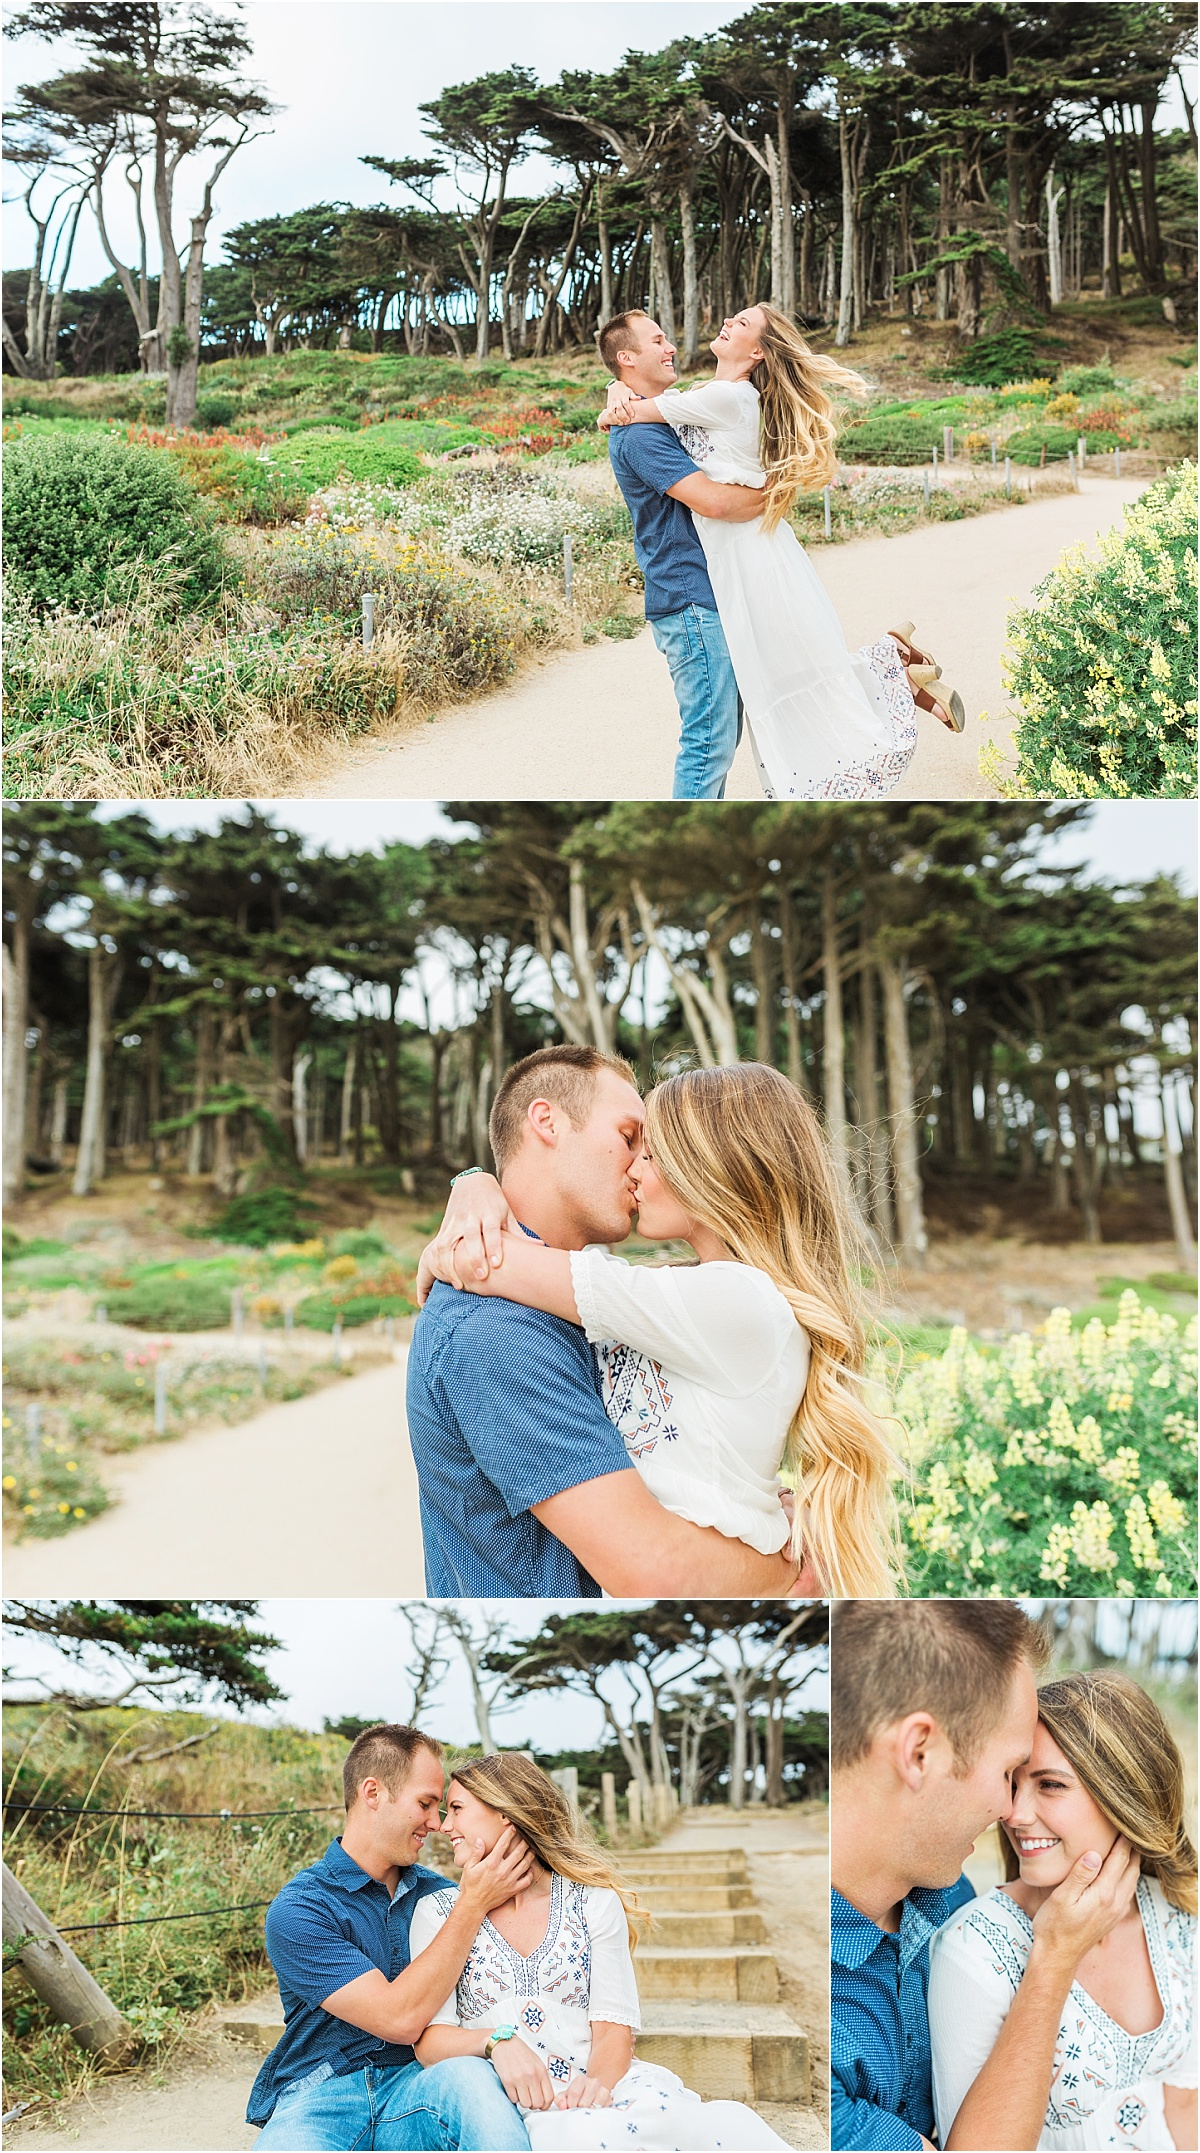 San Francisco Couples Session | Engagement, Anniversary, exploring the city